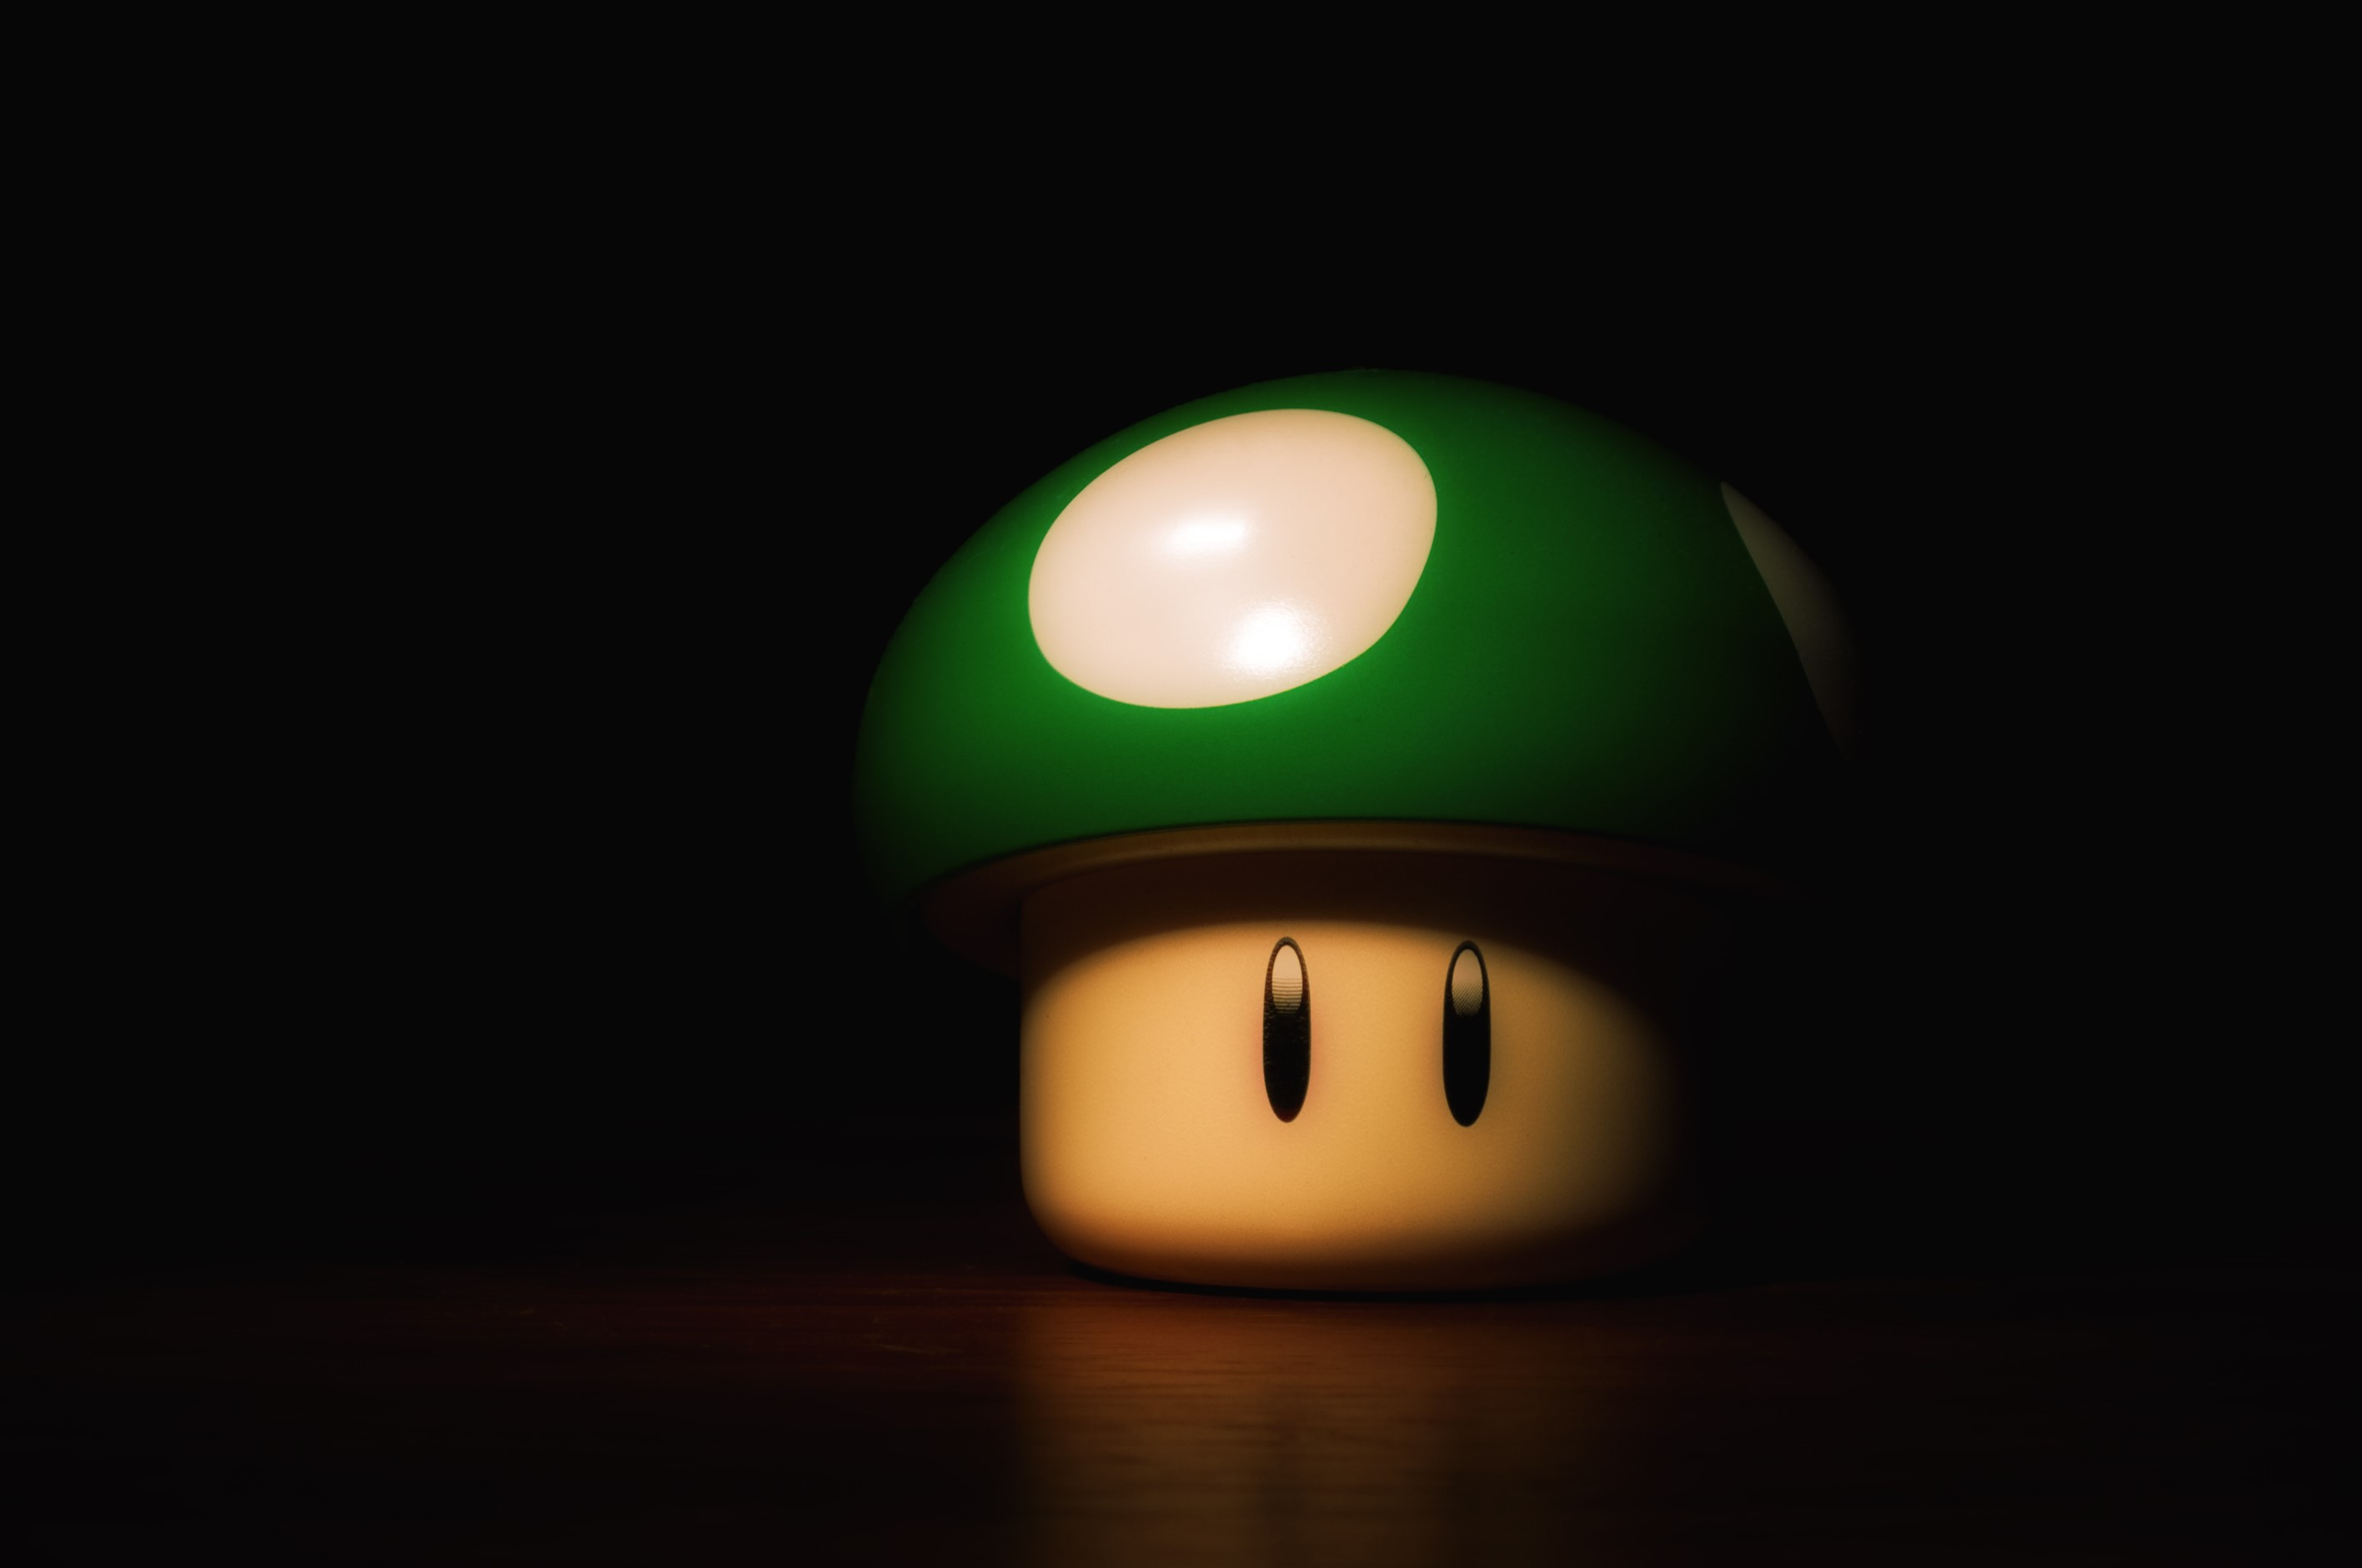 Wallpaper Mushroom 1-UP